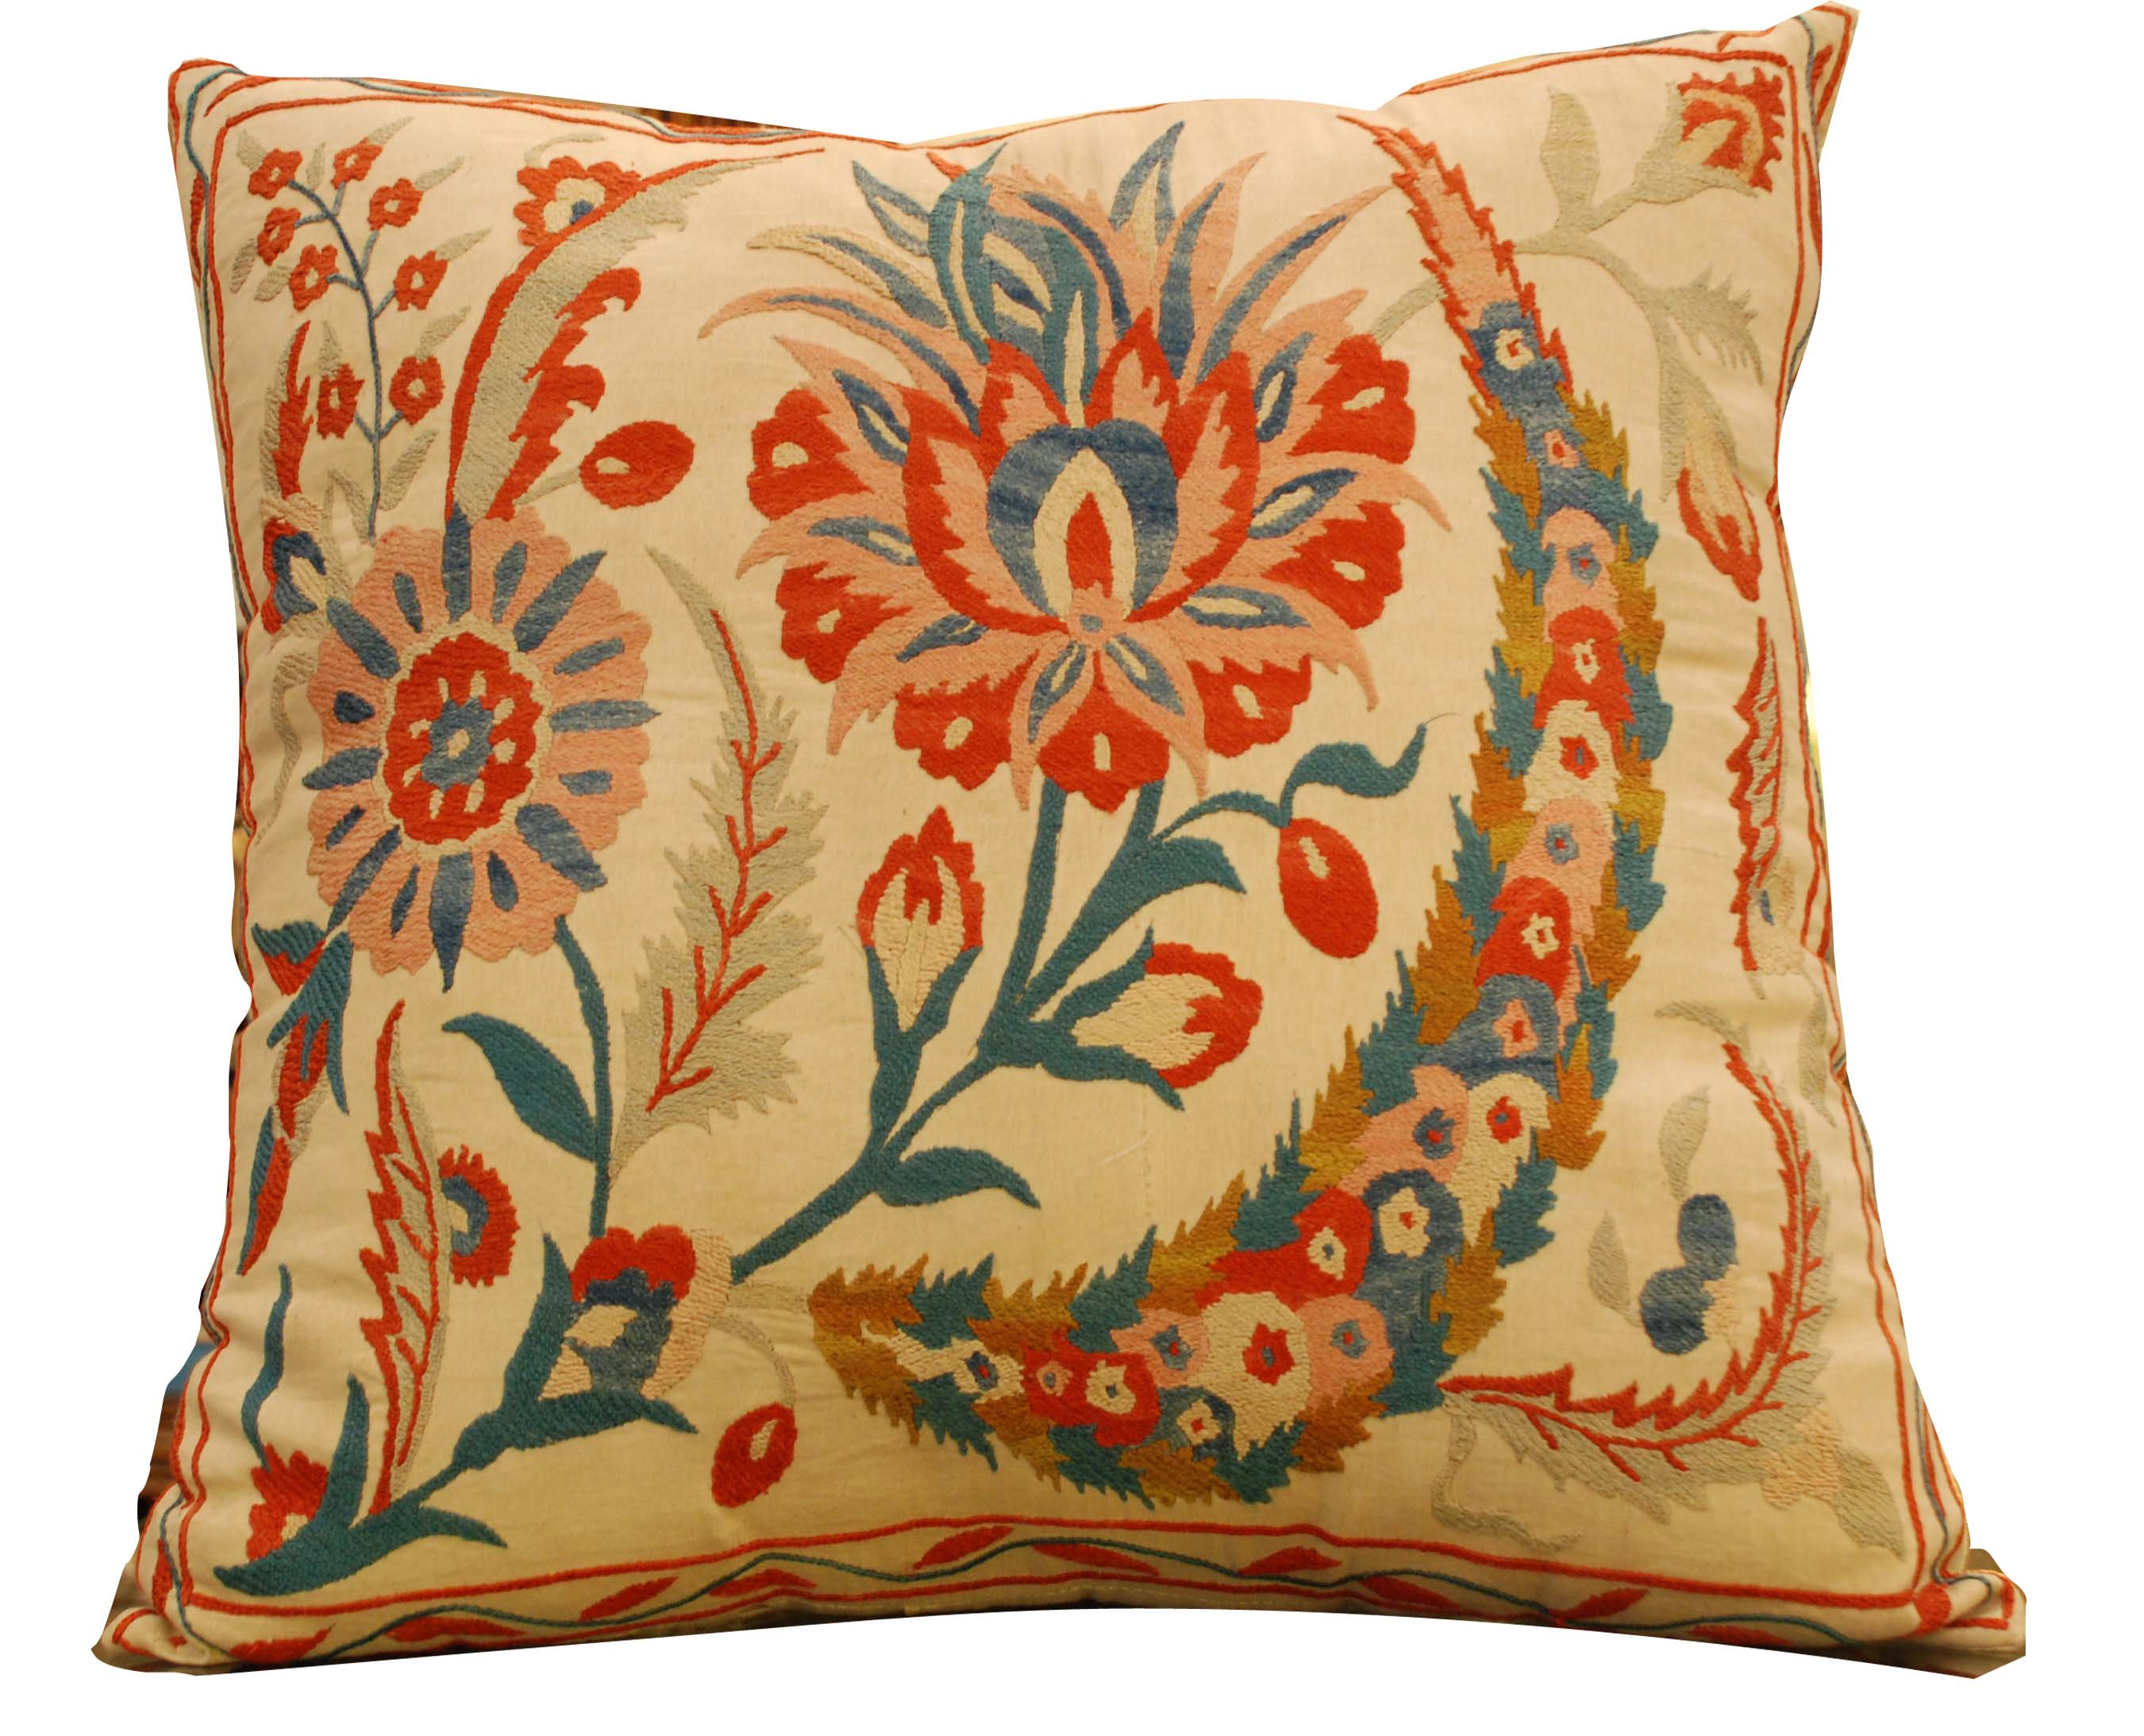 ornina handmade ocu9 embroidered cushion